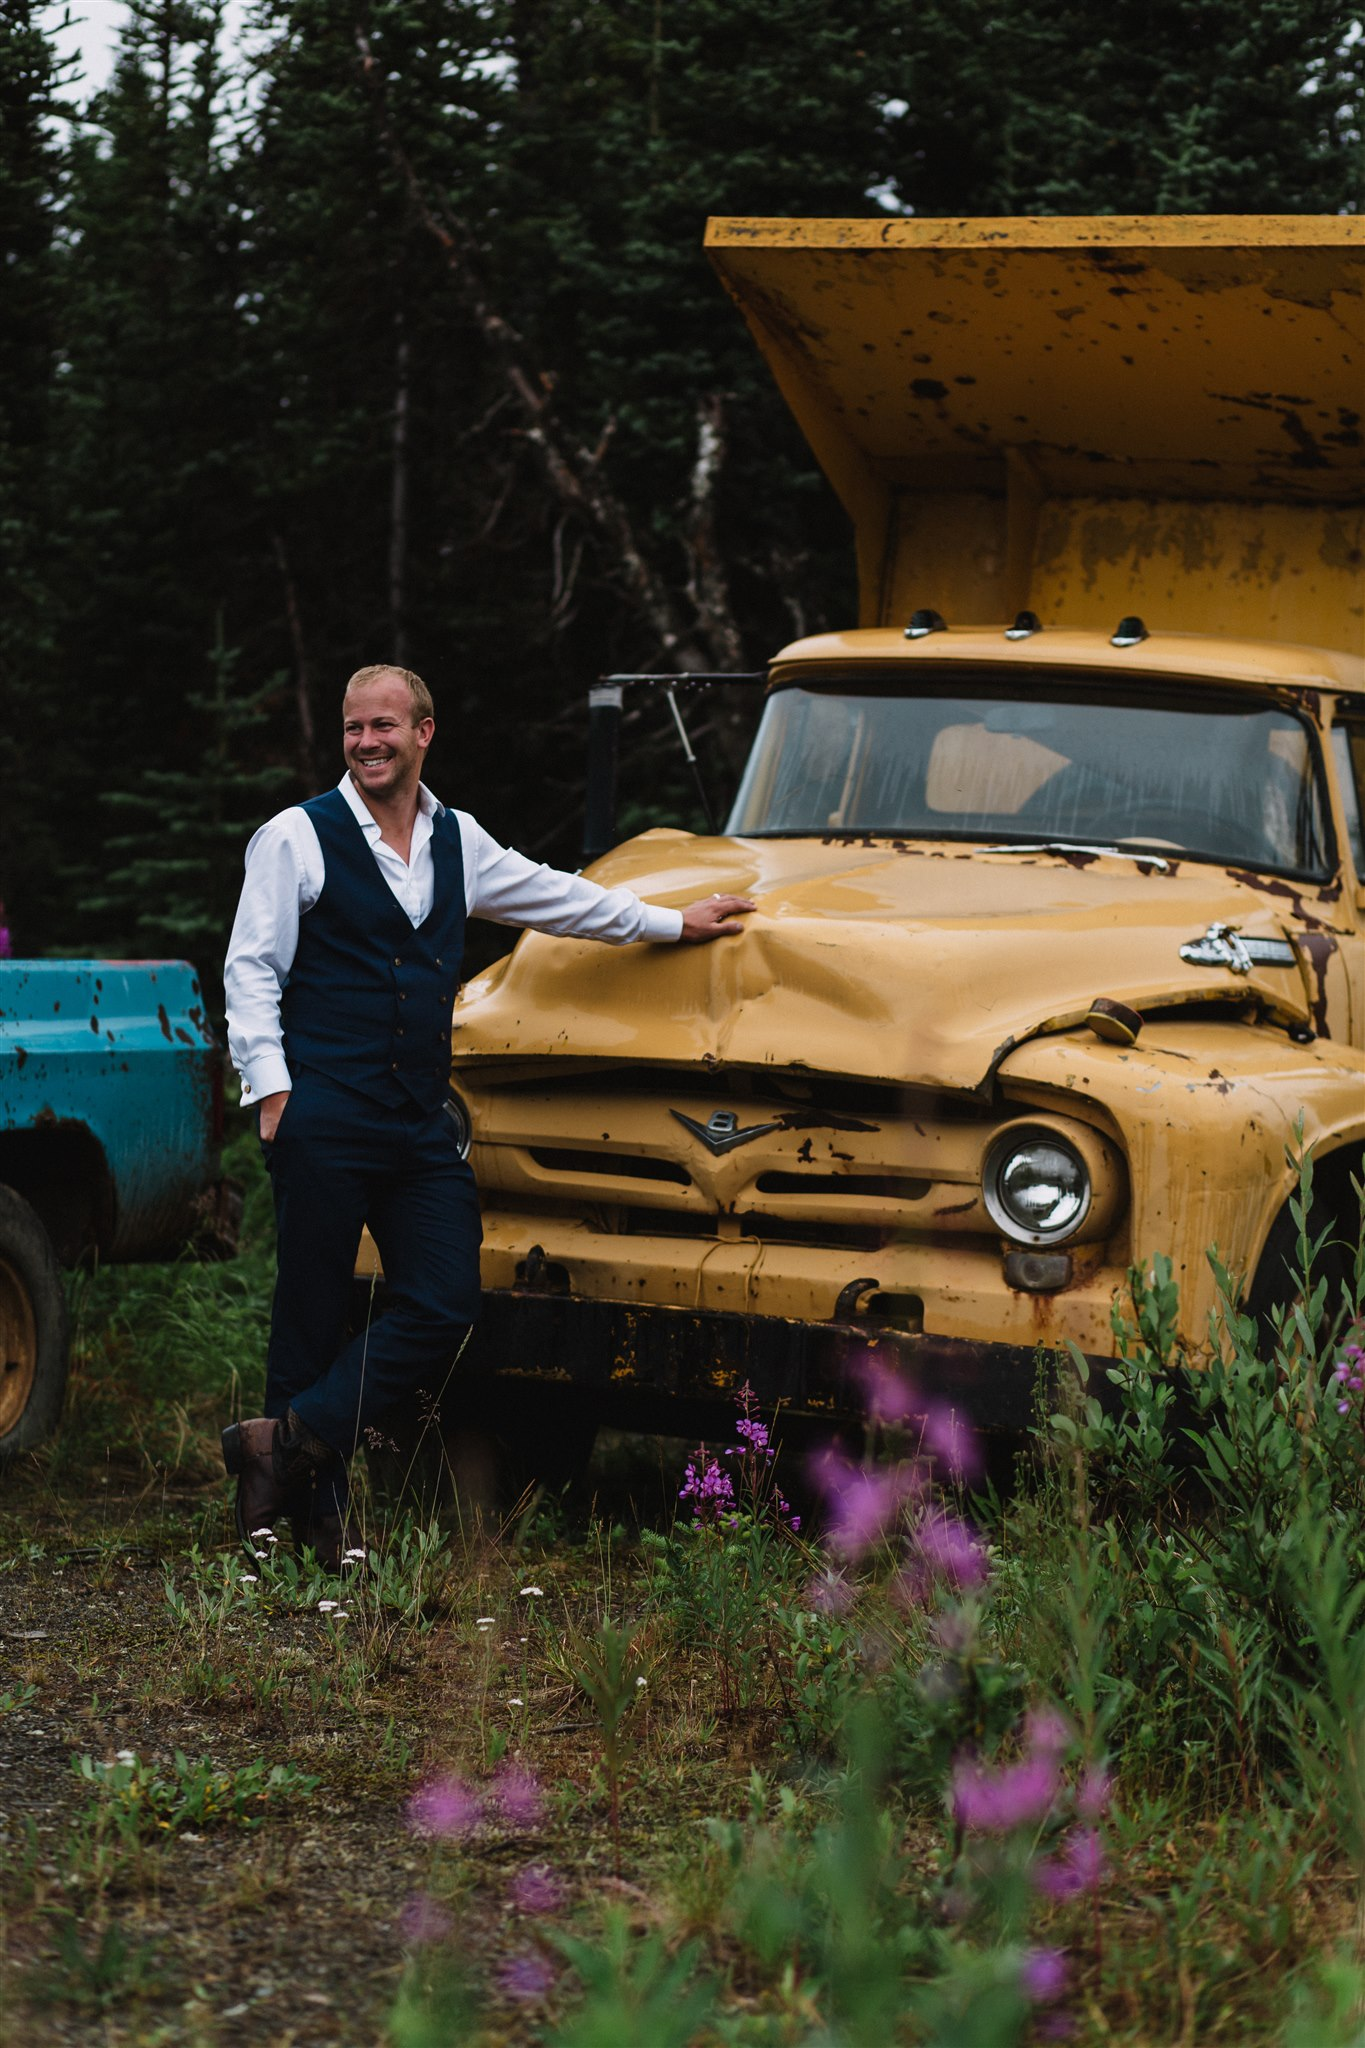 Wedding photography in historic mining town, Atlin, BC.